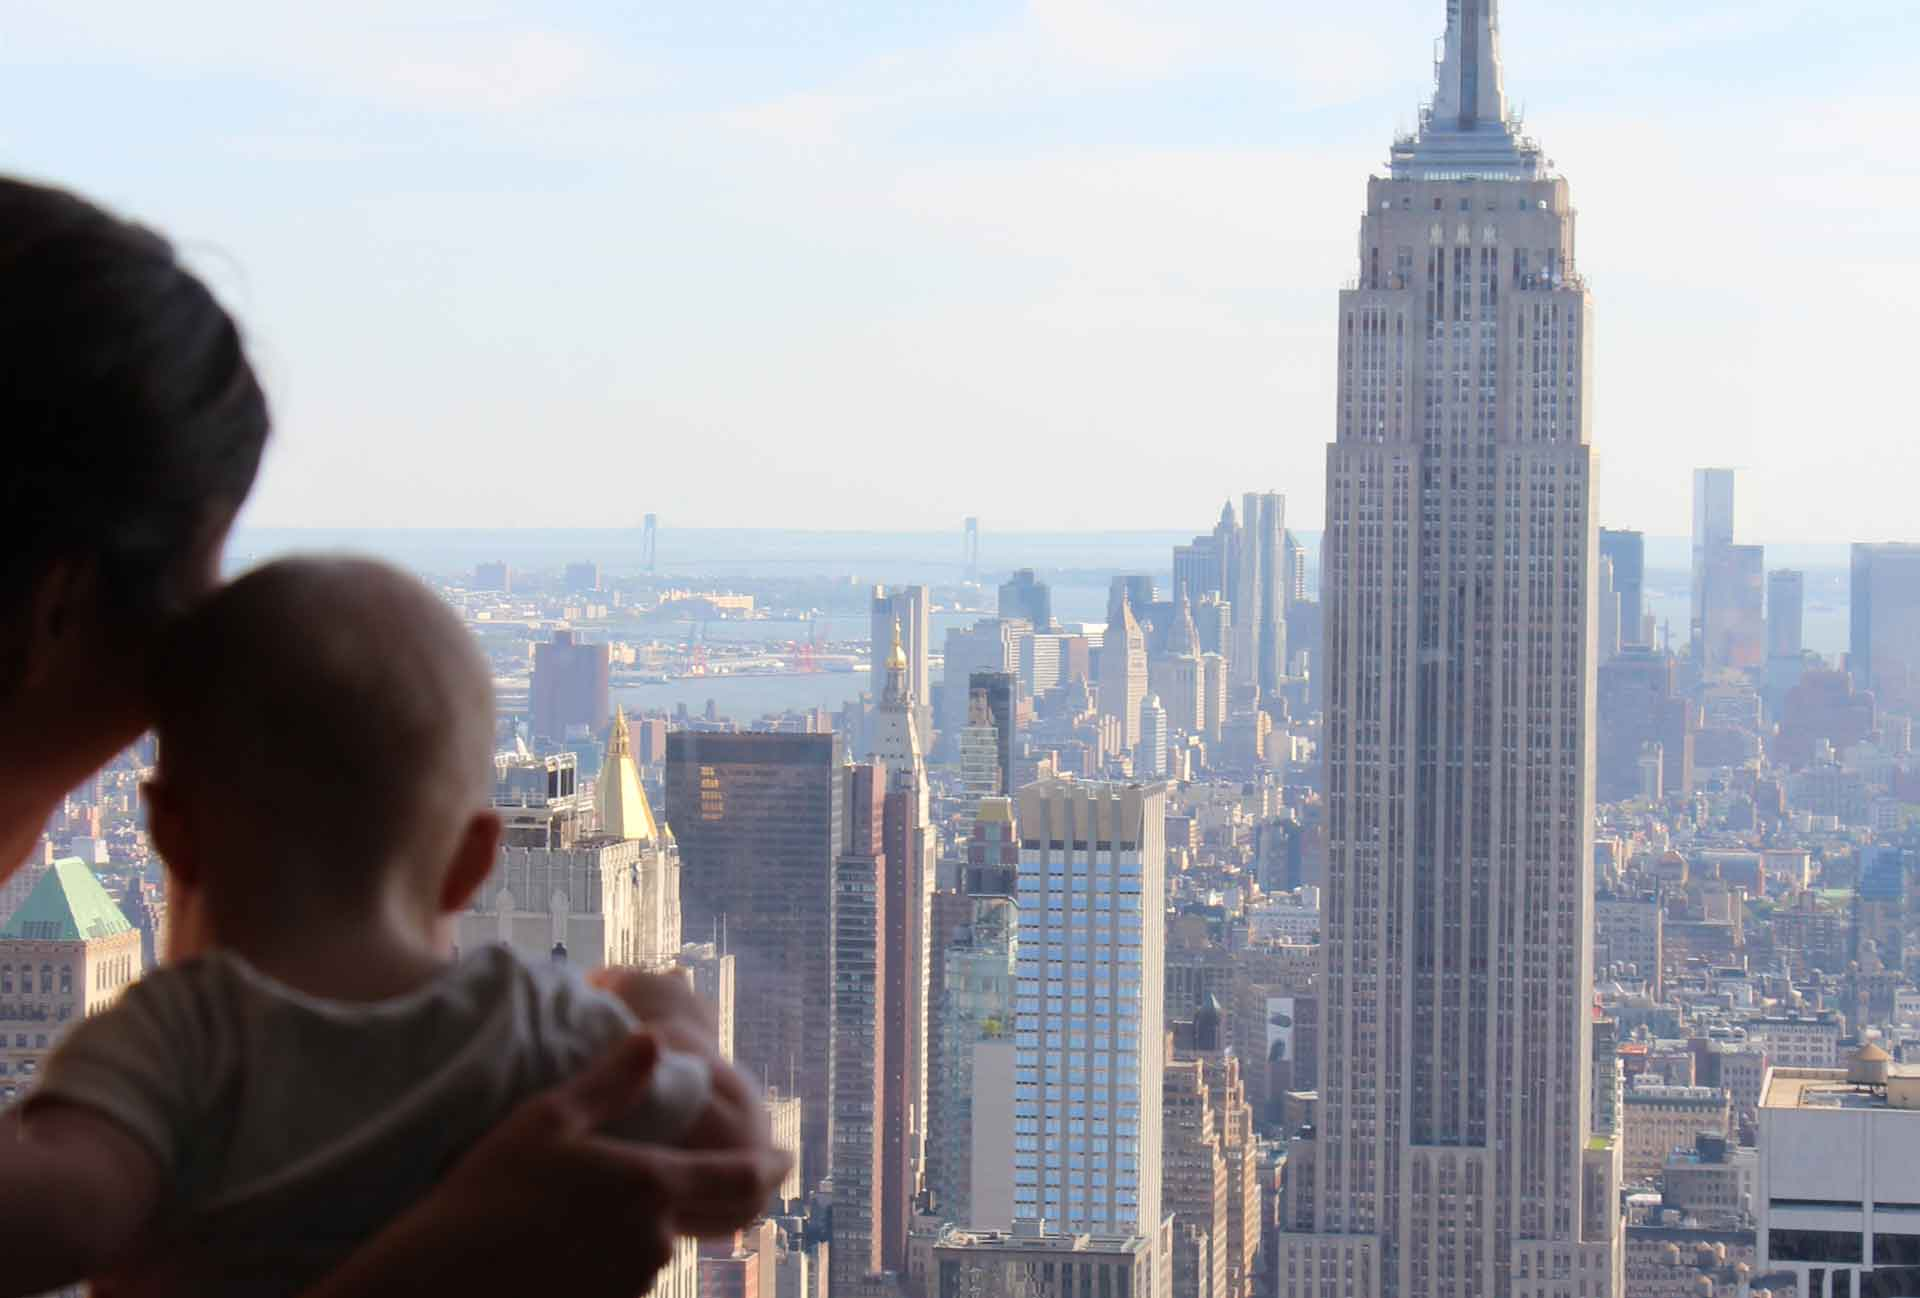 View of Empire State Building NYC with a baby